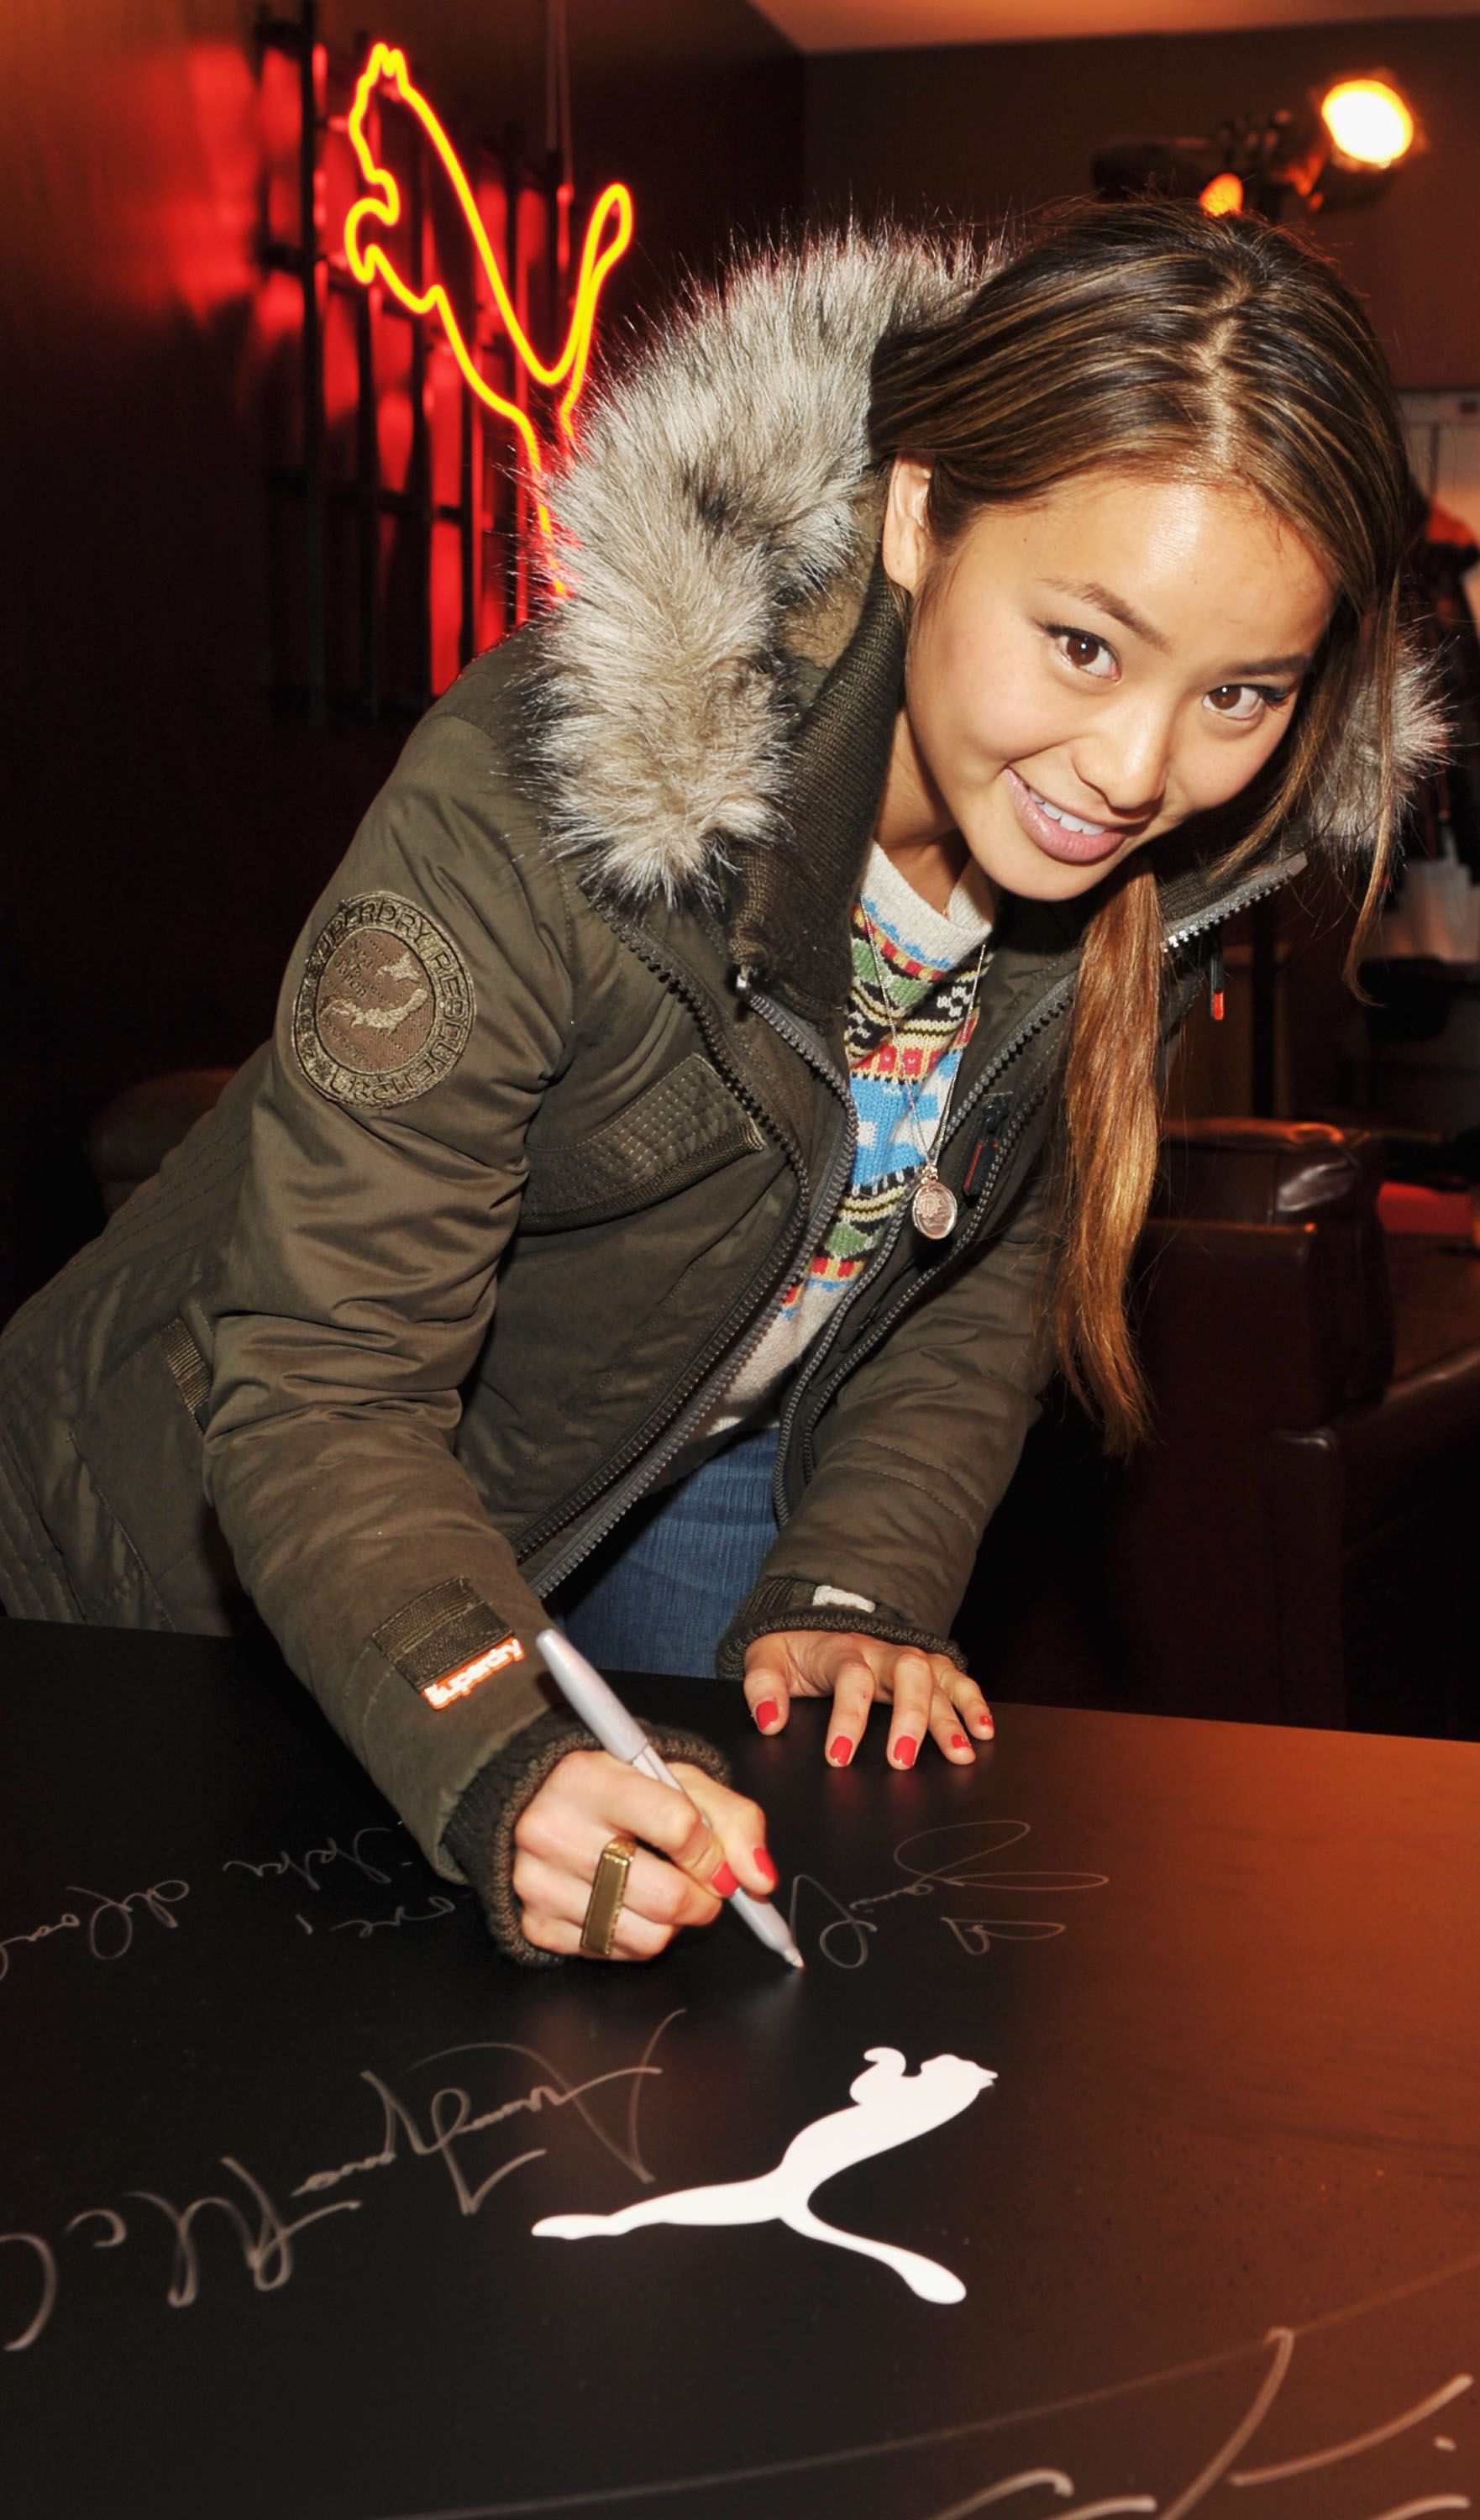 Jamie Chung in the Superdry patrol jacket. her sweater